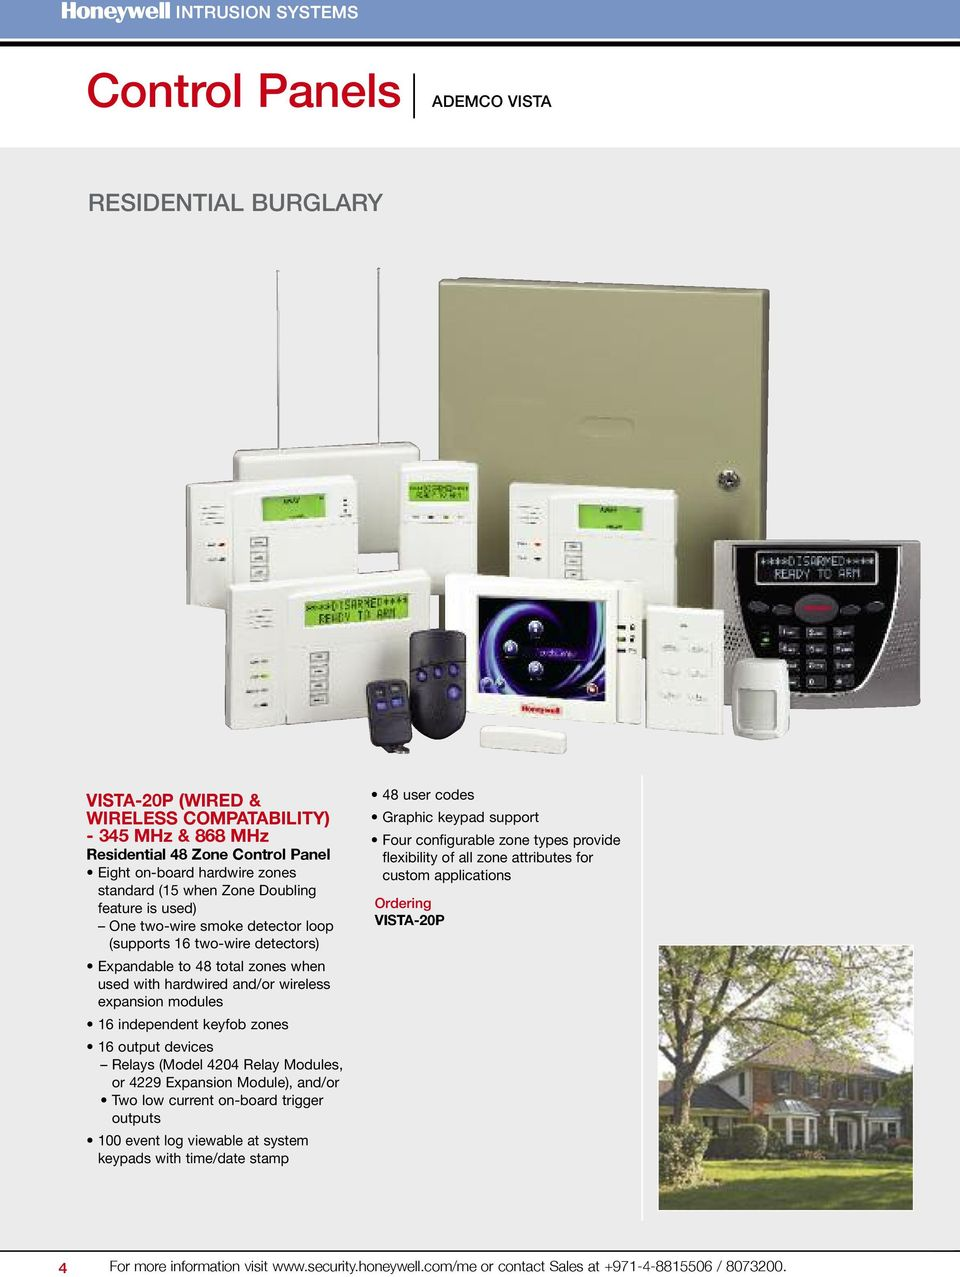 Security Systems Group Intrusion Pdf Honeywell Dualtec Pir Wiring Diy Installers Keyfob Zones 16 Output Devices Relays Model 4204 Relay Modules Or 4229 Expansion Module